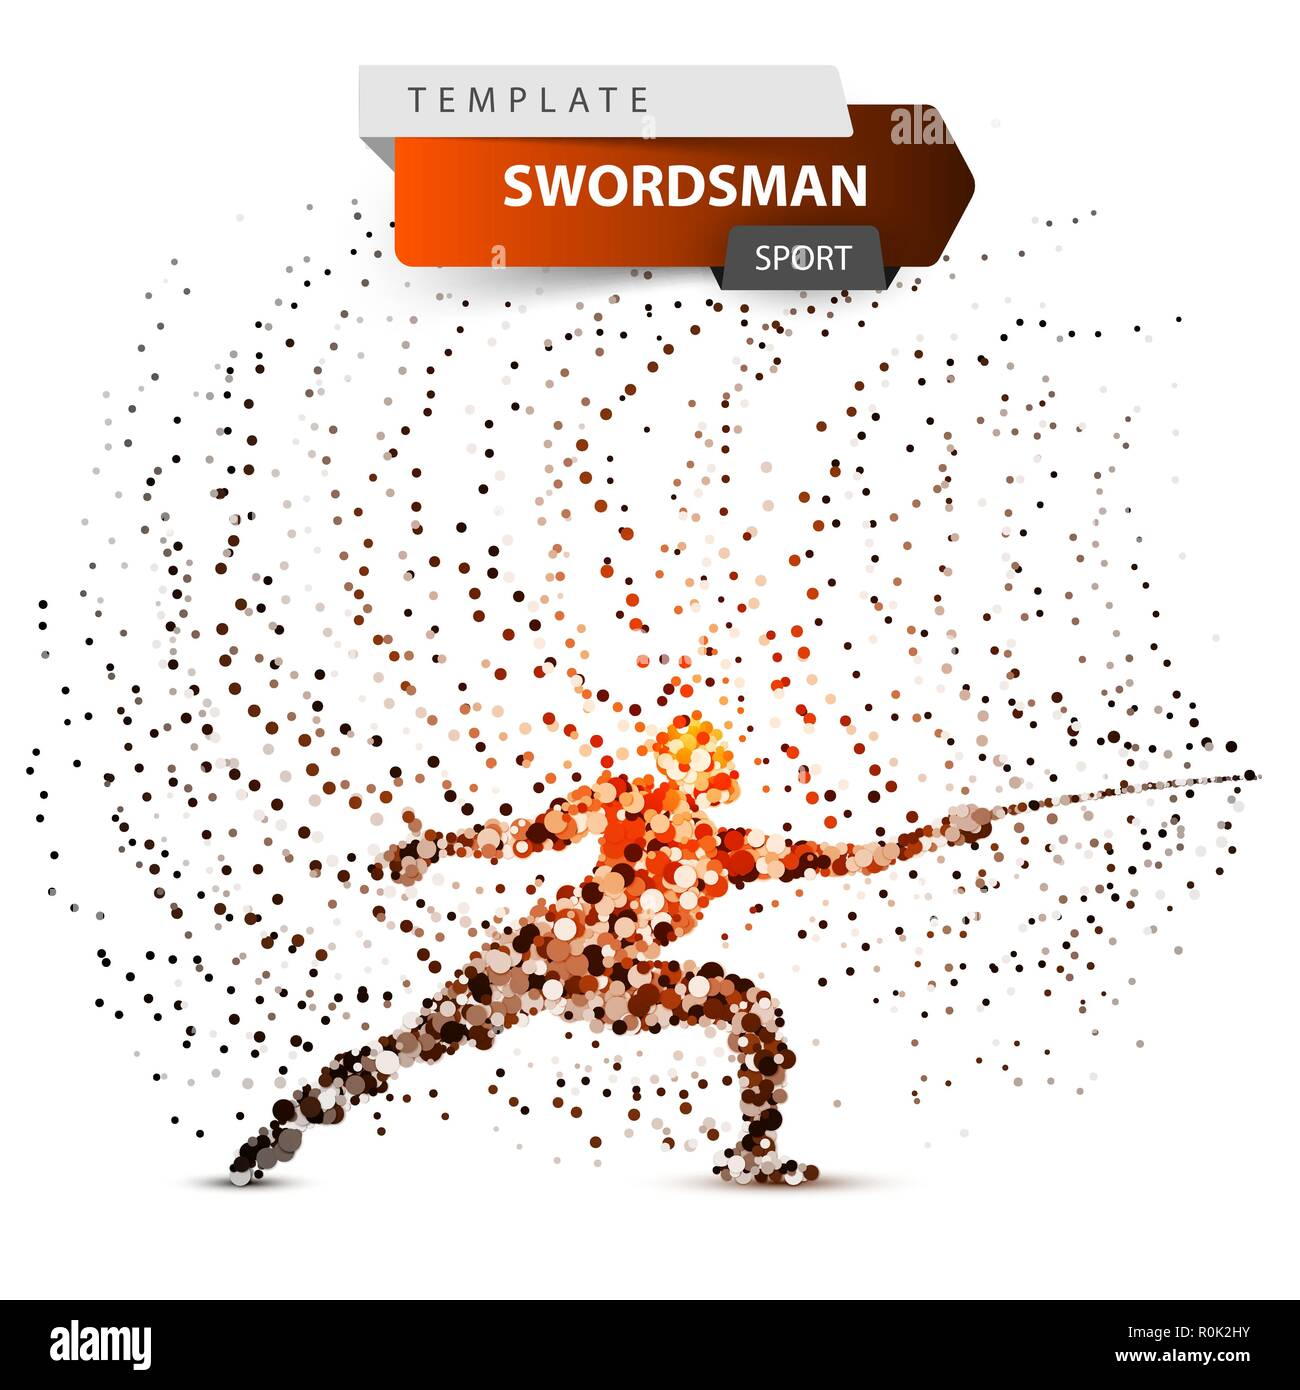 Sportsman, swordsman - glare dot illustration. - Stock Image